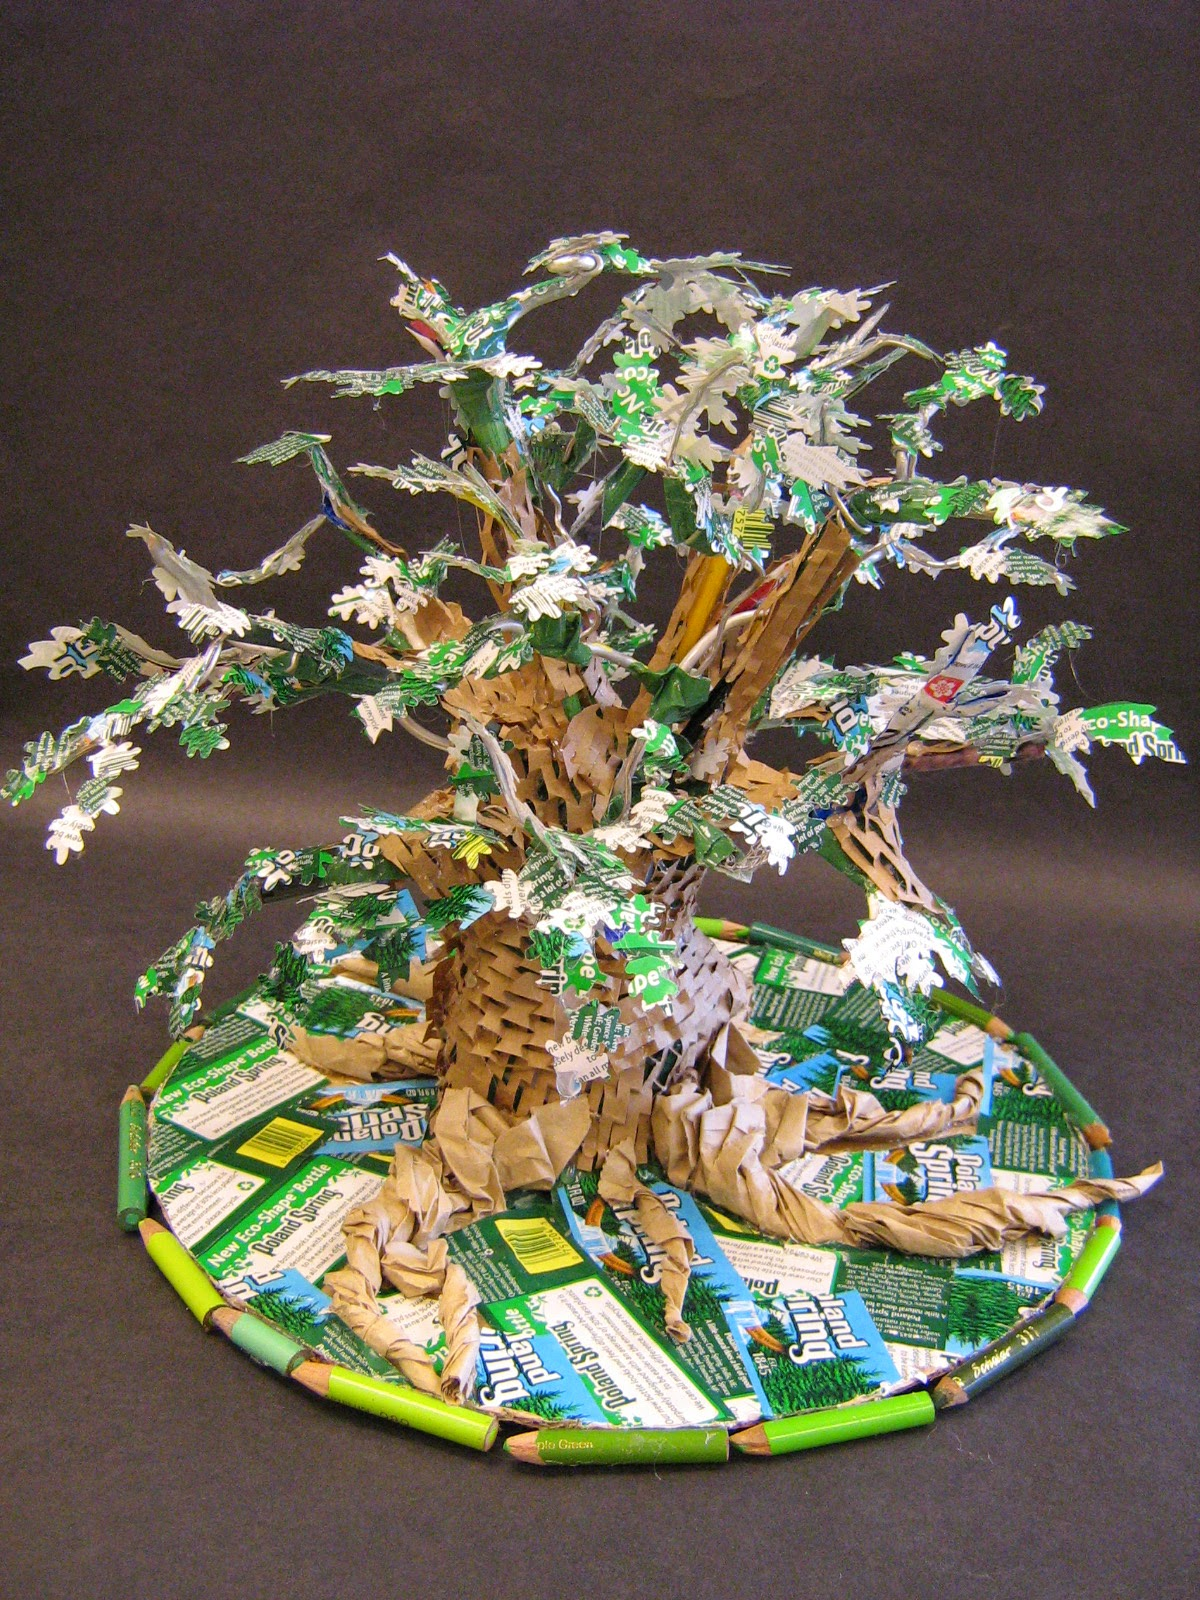 Recycled art project ideas art craft gift ideas - Recycled can art projects ...